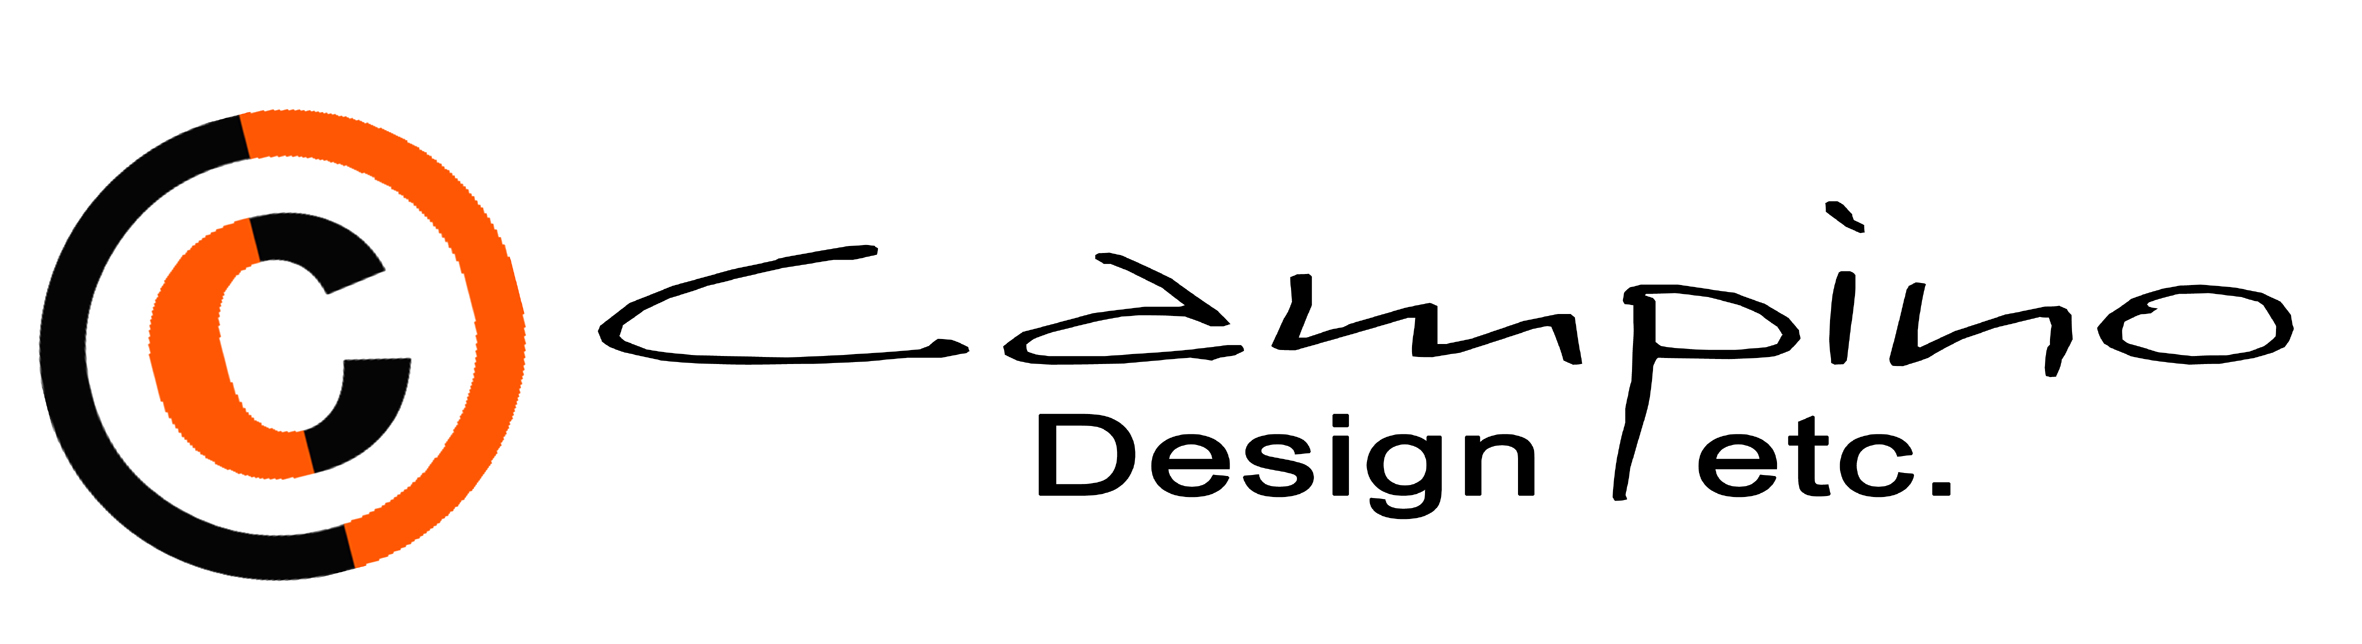 logo Campino Design etc.